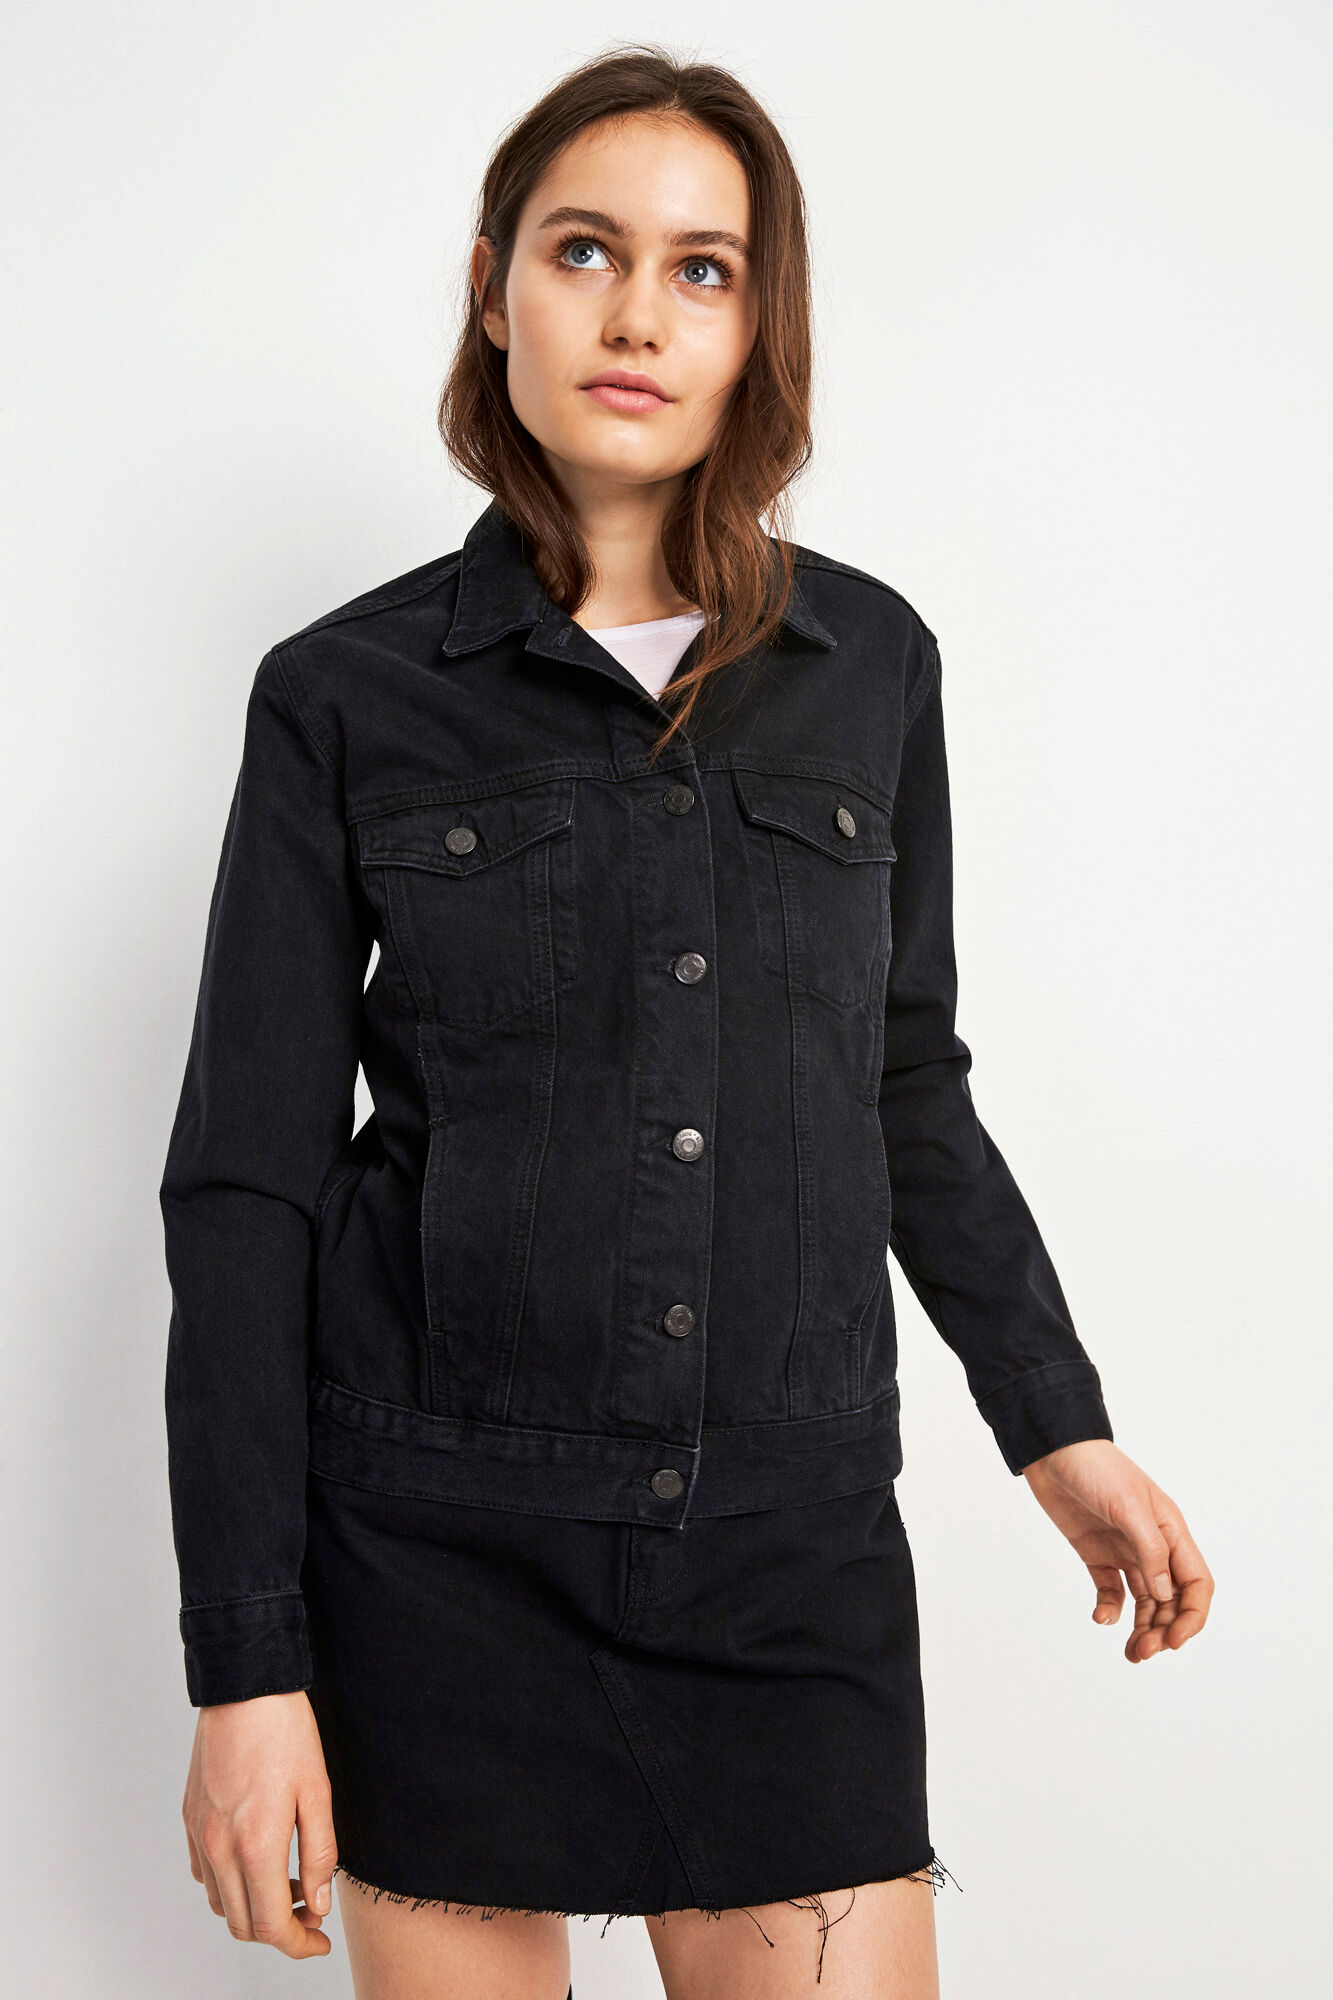 ENSETTLER DENIM JACKET 6447, WORN BLACK